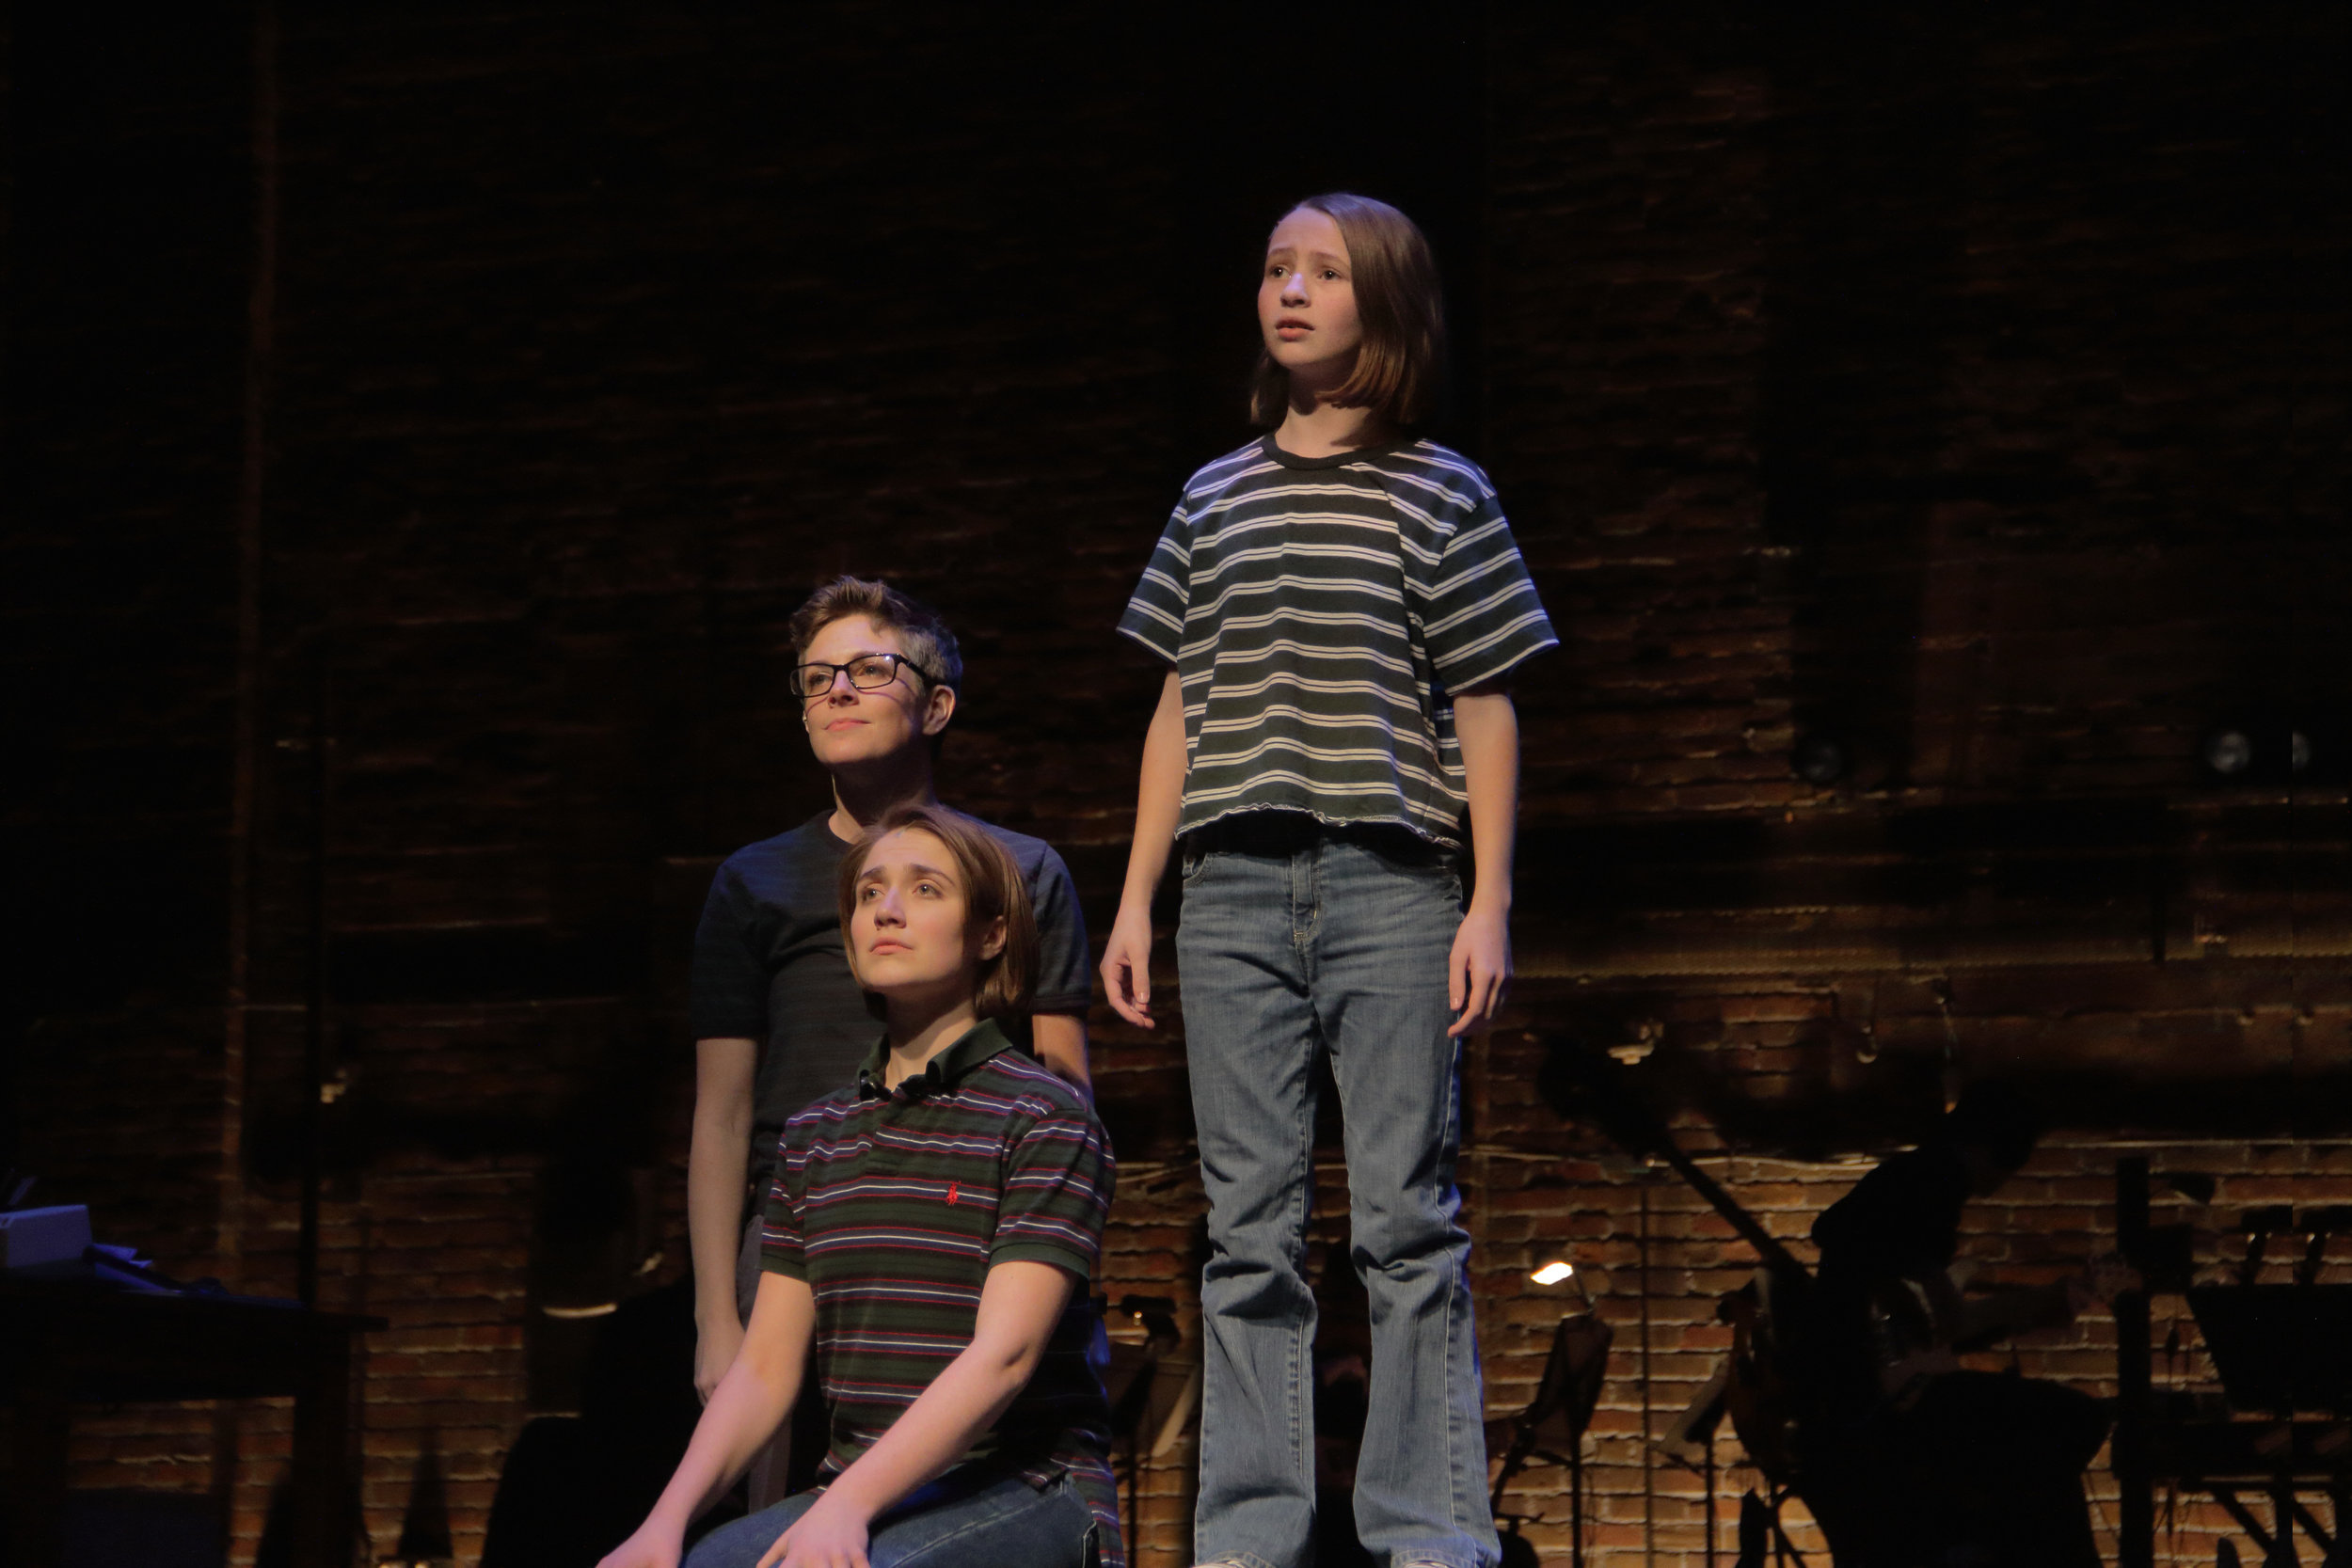 FunHome closeups 183_edit2.jpg